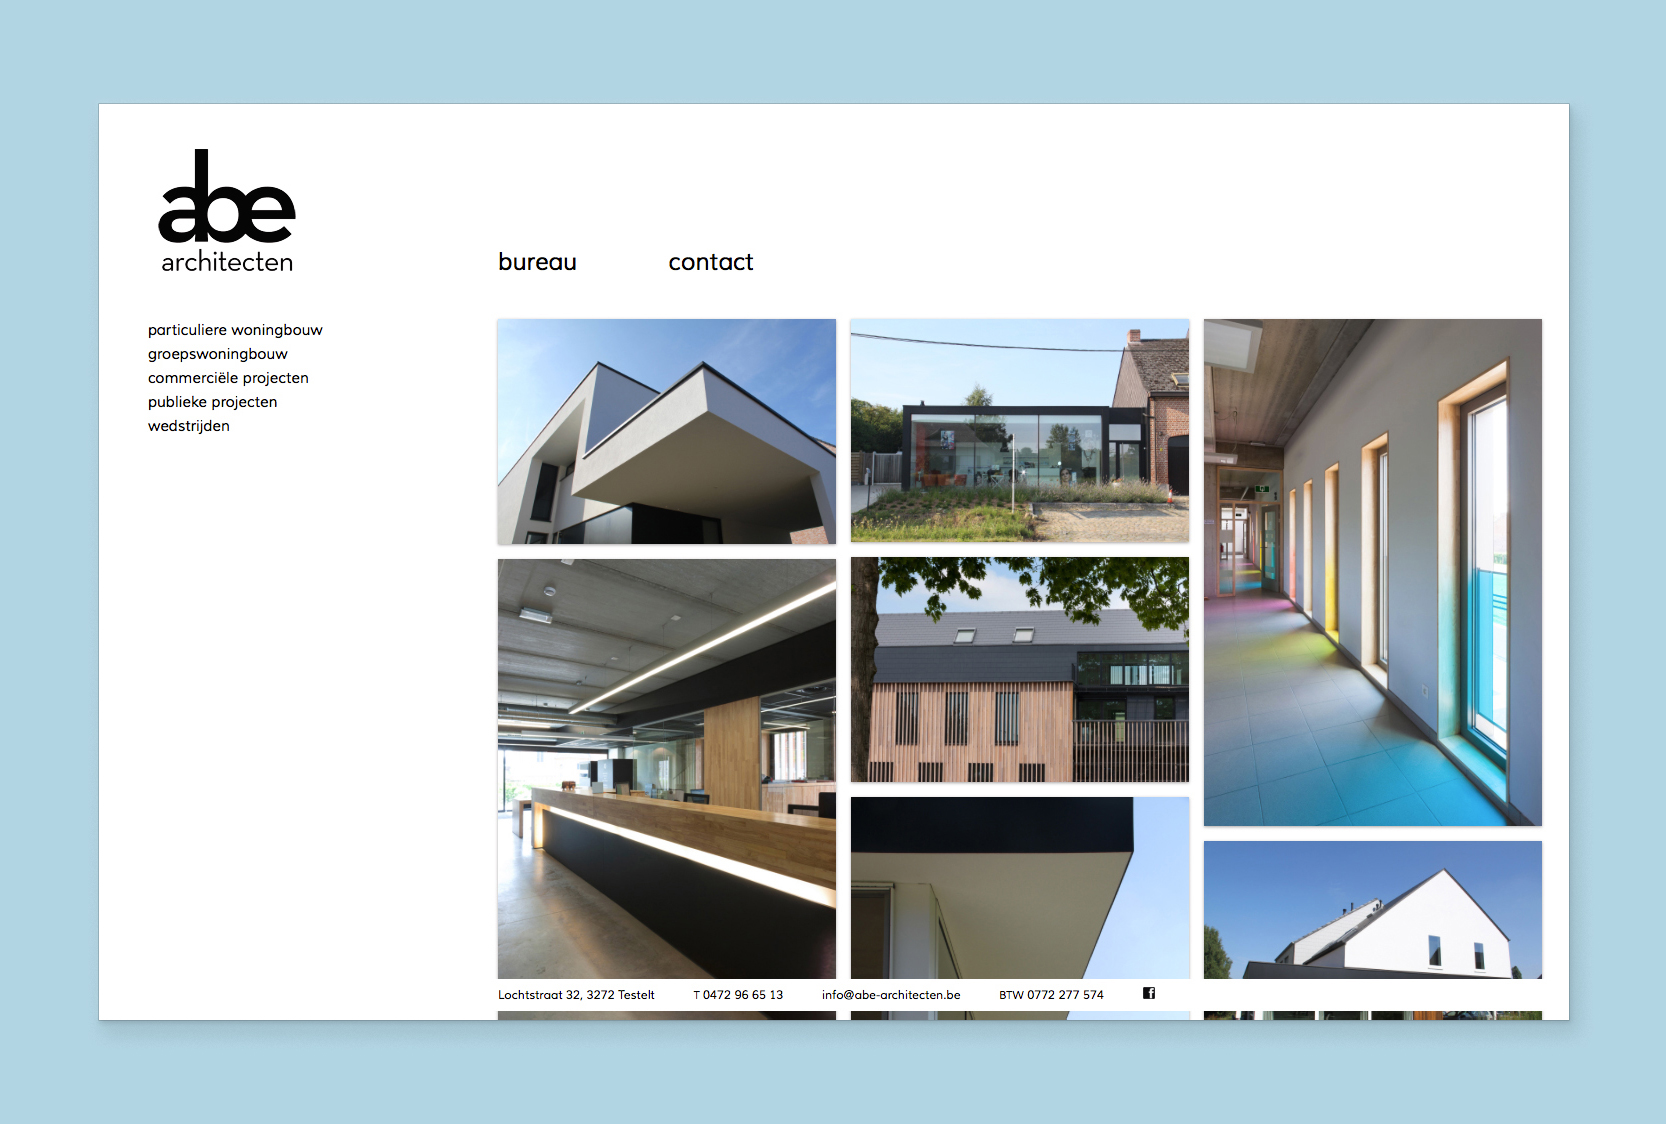 abe-architecten-website-2015